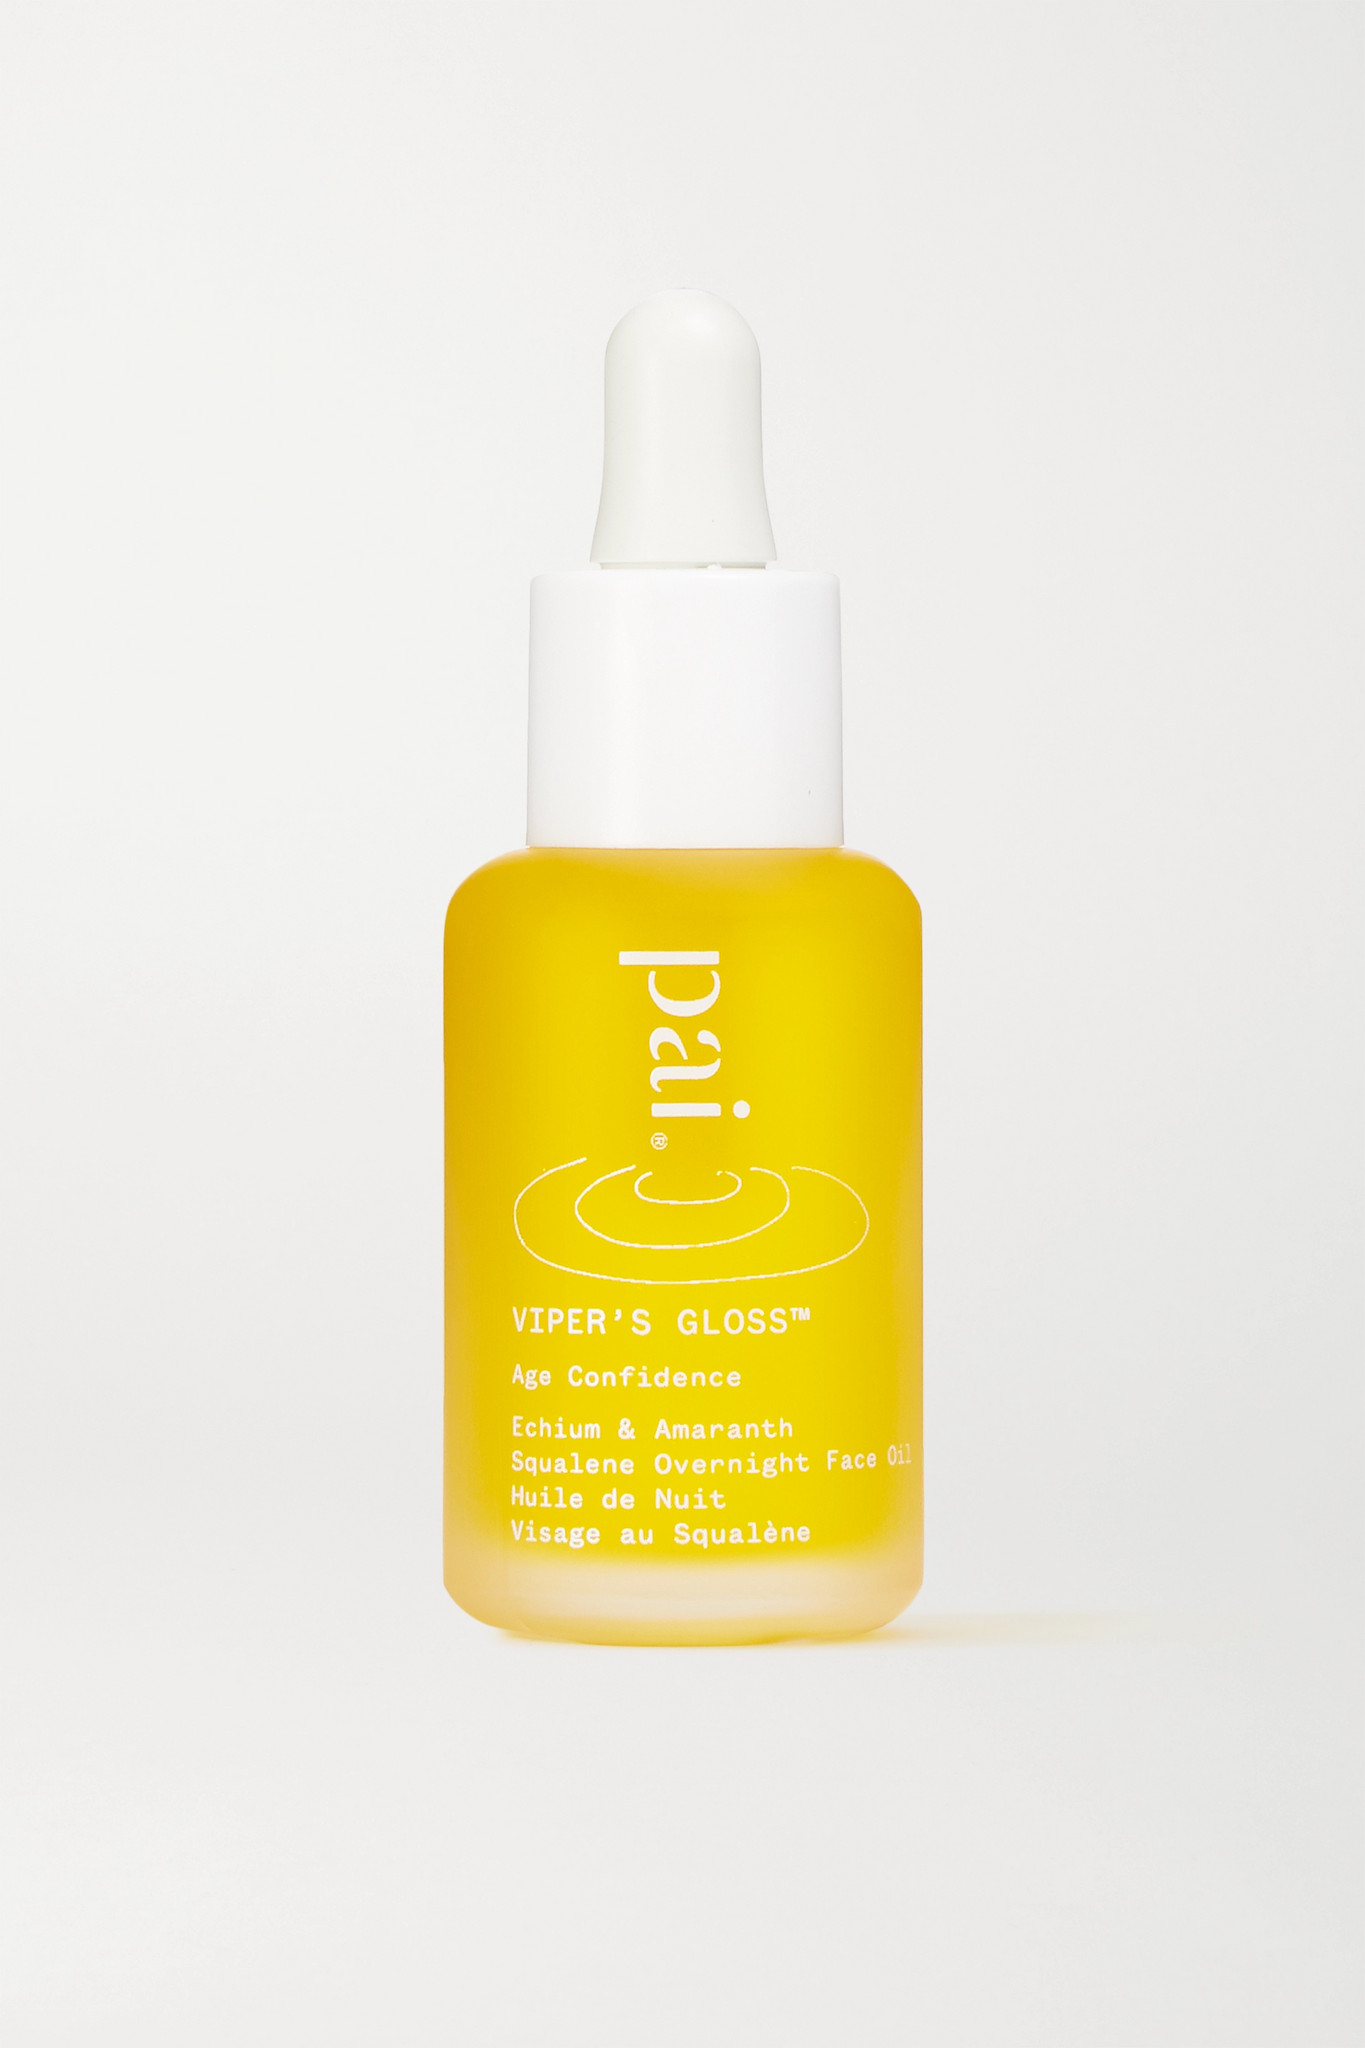 PAI SKINCARE - + Net Sustain Viper's Gloss Echium & Amaranth Face Oil, 30ml - one size